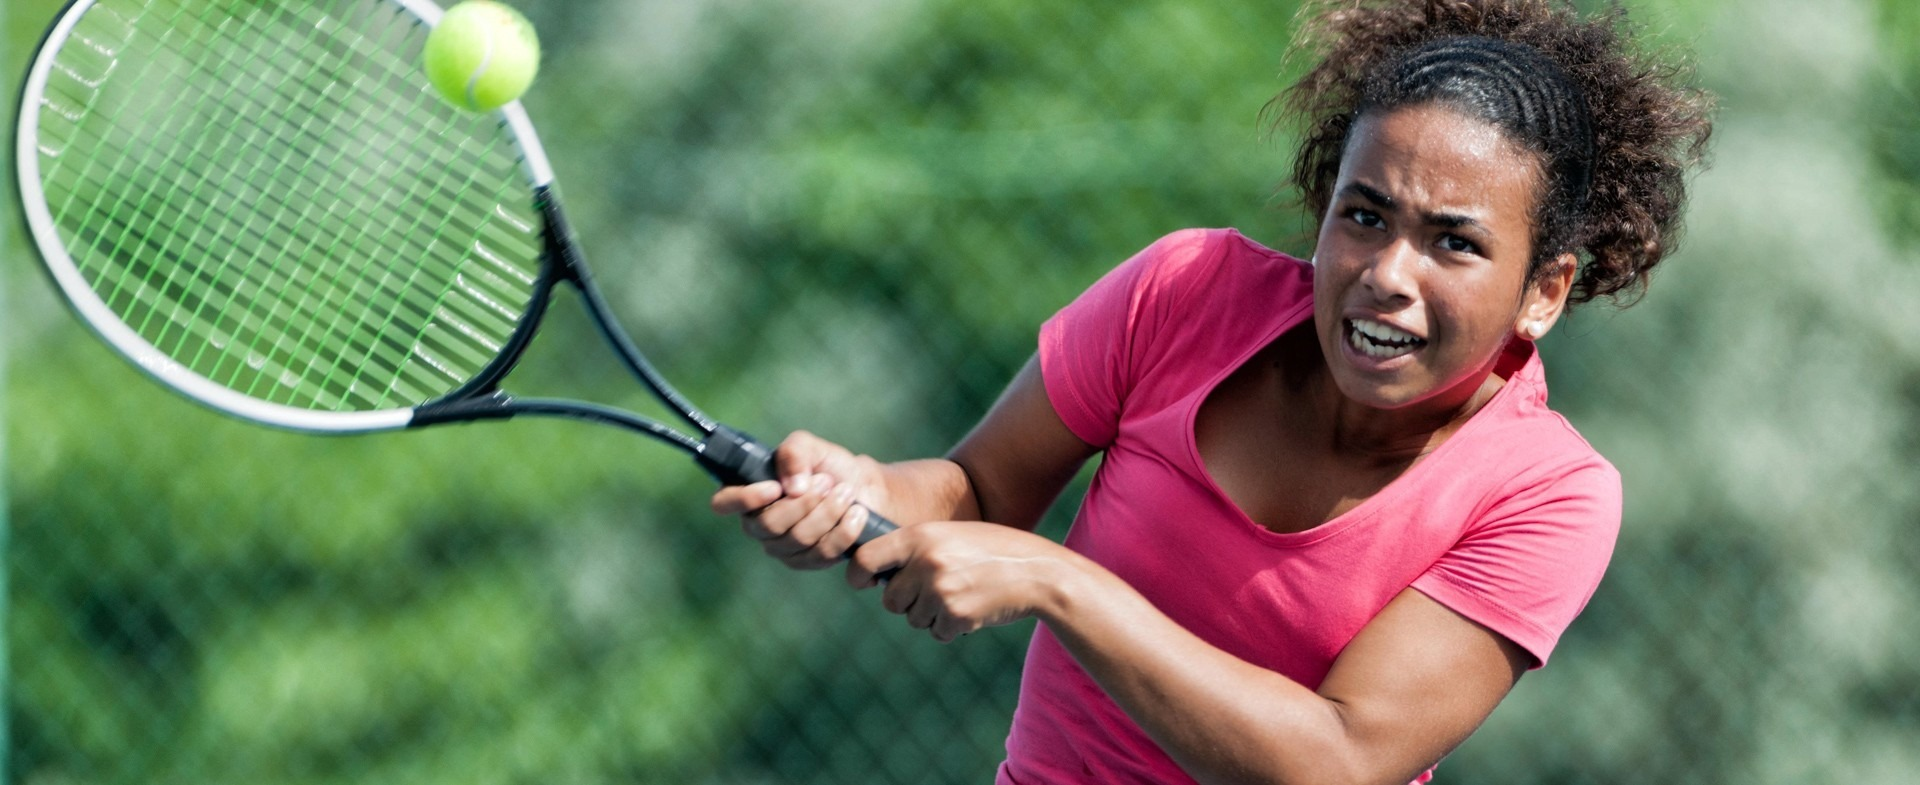 Girl swinging a tennis racket